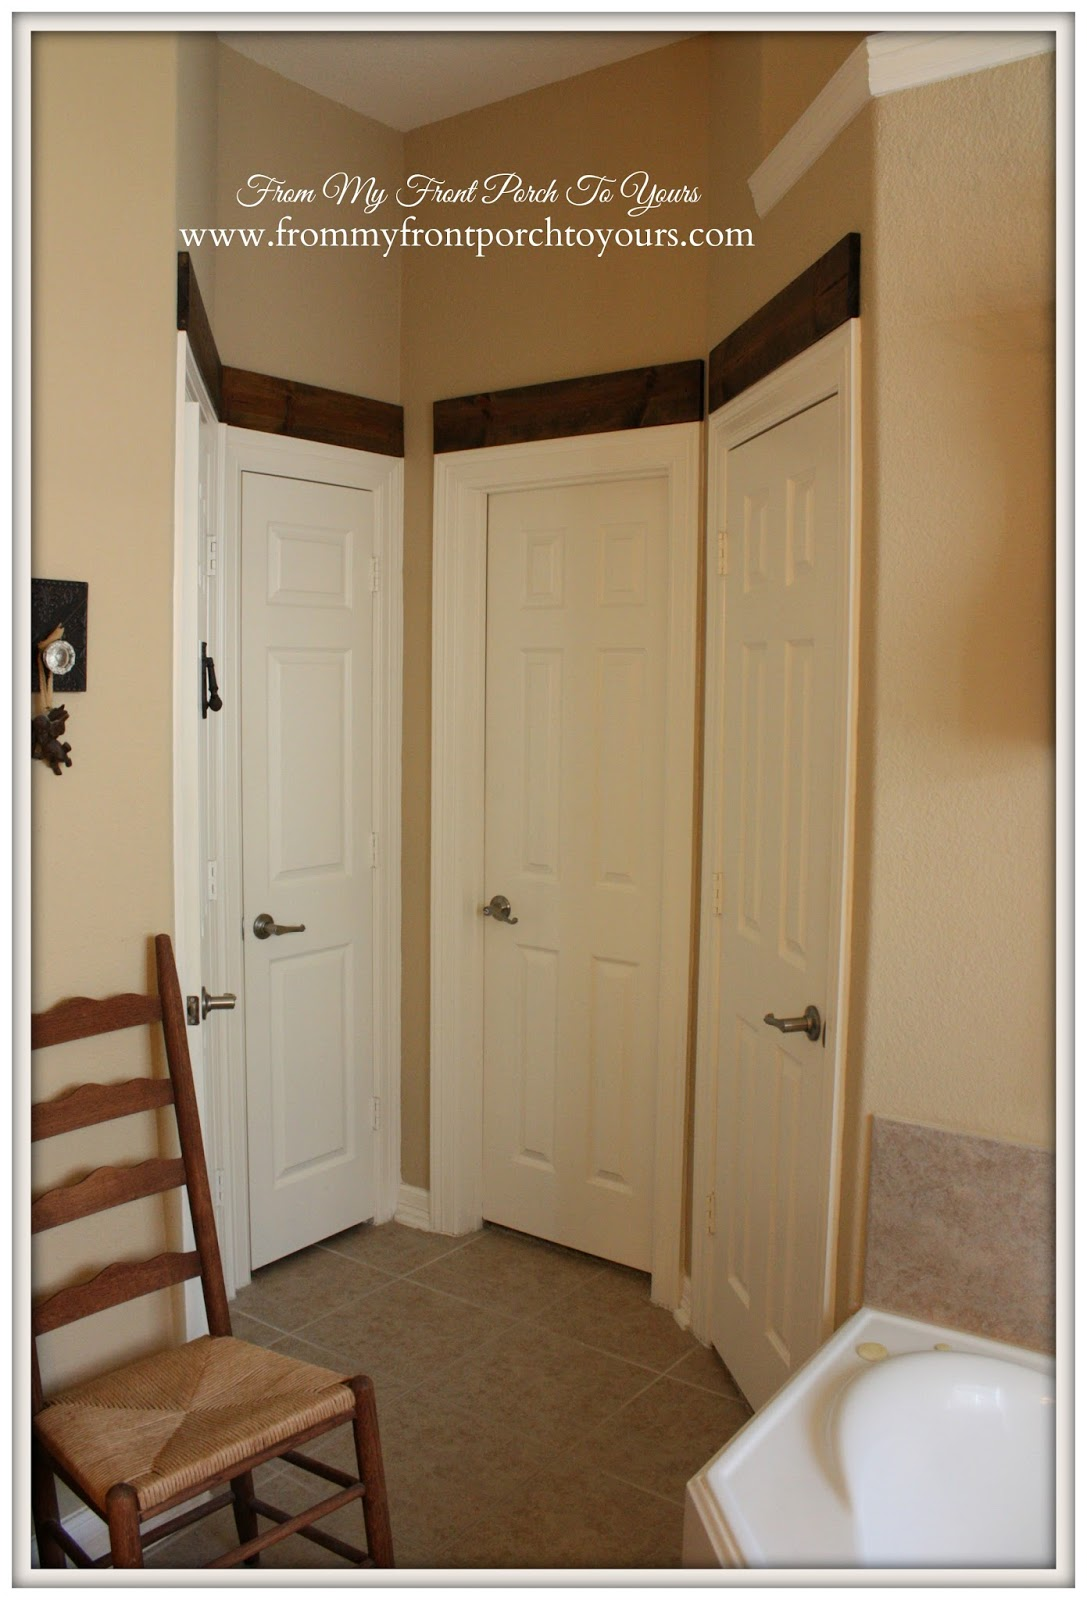 Wood Beam Door Toppers-From My Front Porch To Yours- Master Bathroom Before